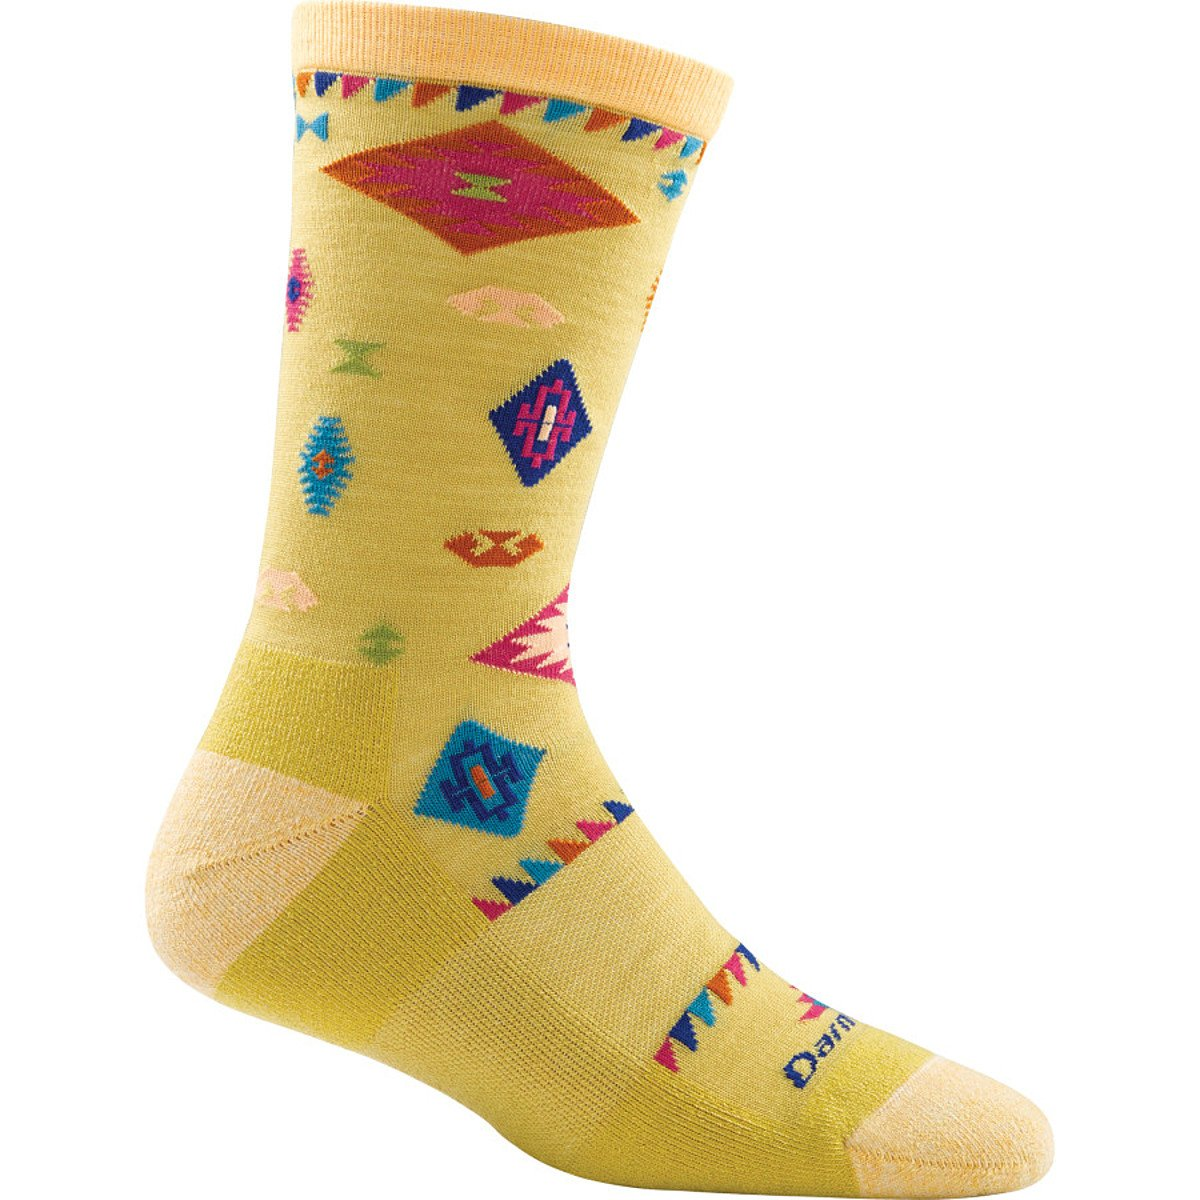 Darn Tough Women's Tribal Crew Light Cushion Socks 1622-CHR-M